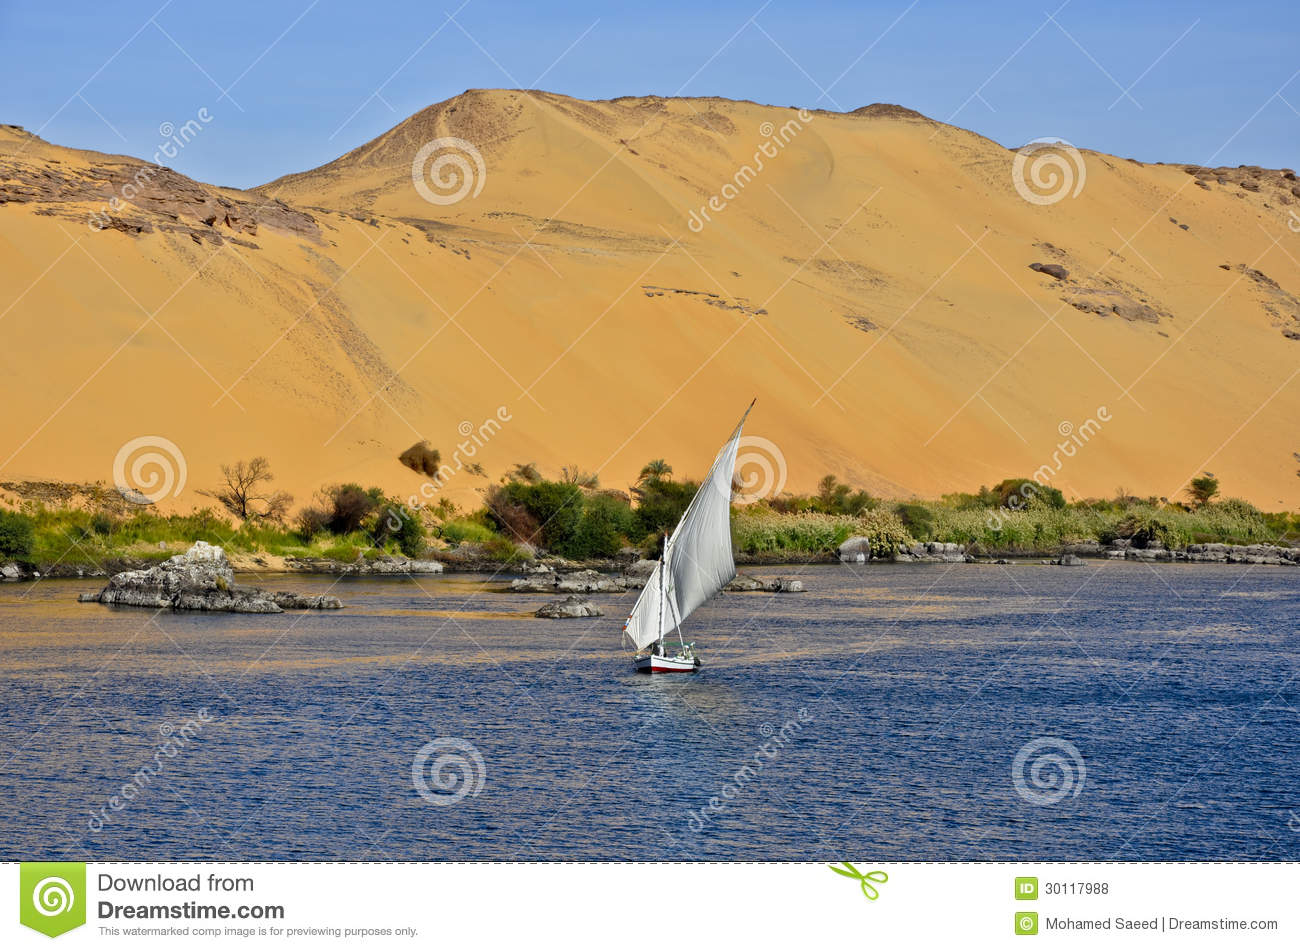 A felucca at The Nile in Aswan, Egypt